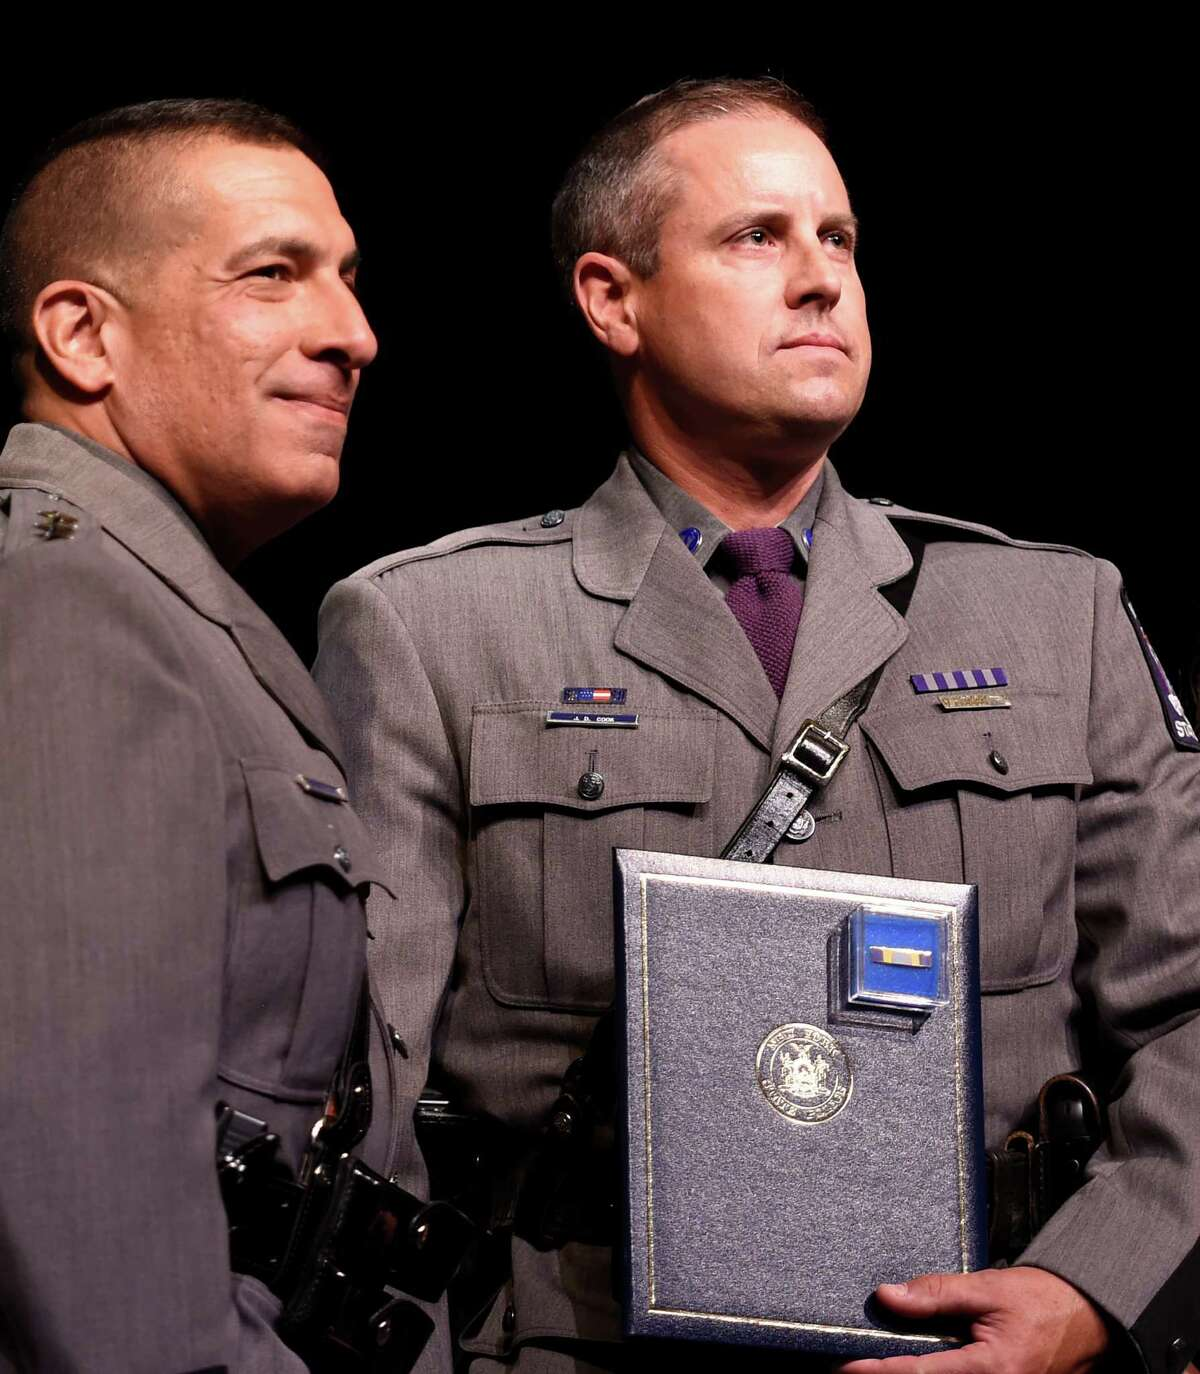 Superintendent Joseph D'Amico, left presents a commendation to Technical Sergeant Jay D. Cook for his capture of convict David Sweat who broke out of Dannemora Prison during the Superintendents Commendation Awards ceremony held this year at The University at Albany Thursday morning May 26, 2016, in Albany, N.Y. (Skip Dickstein/Times Union)